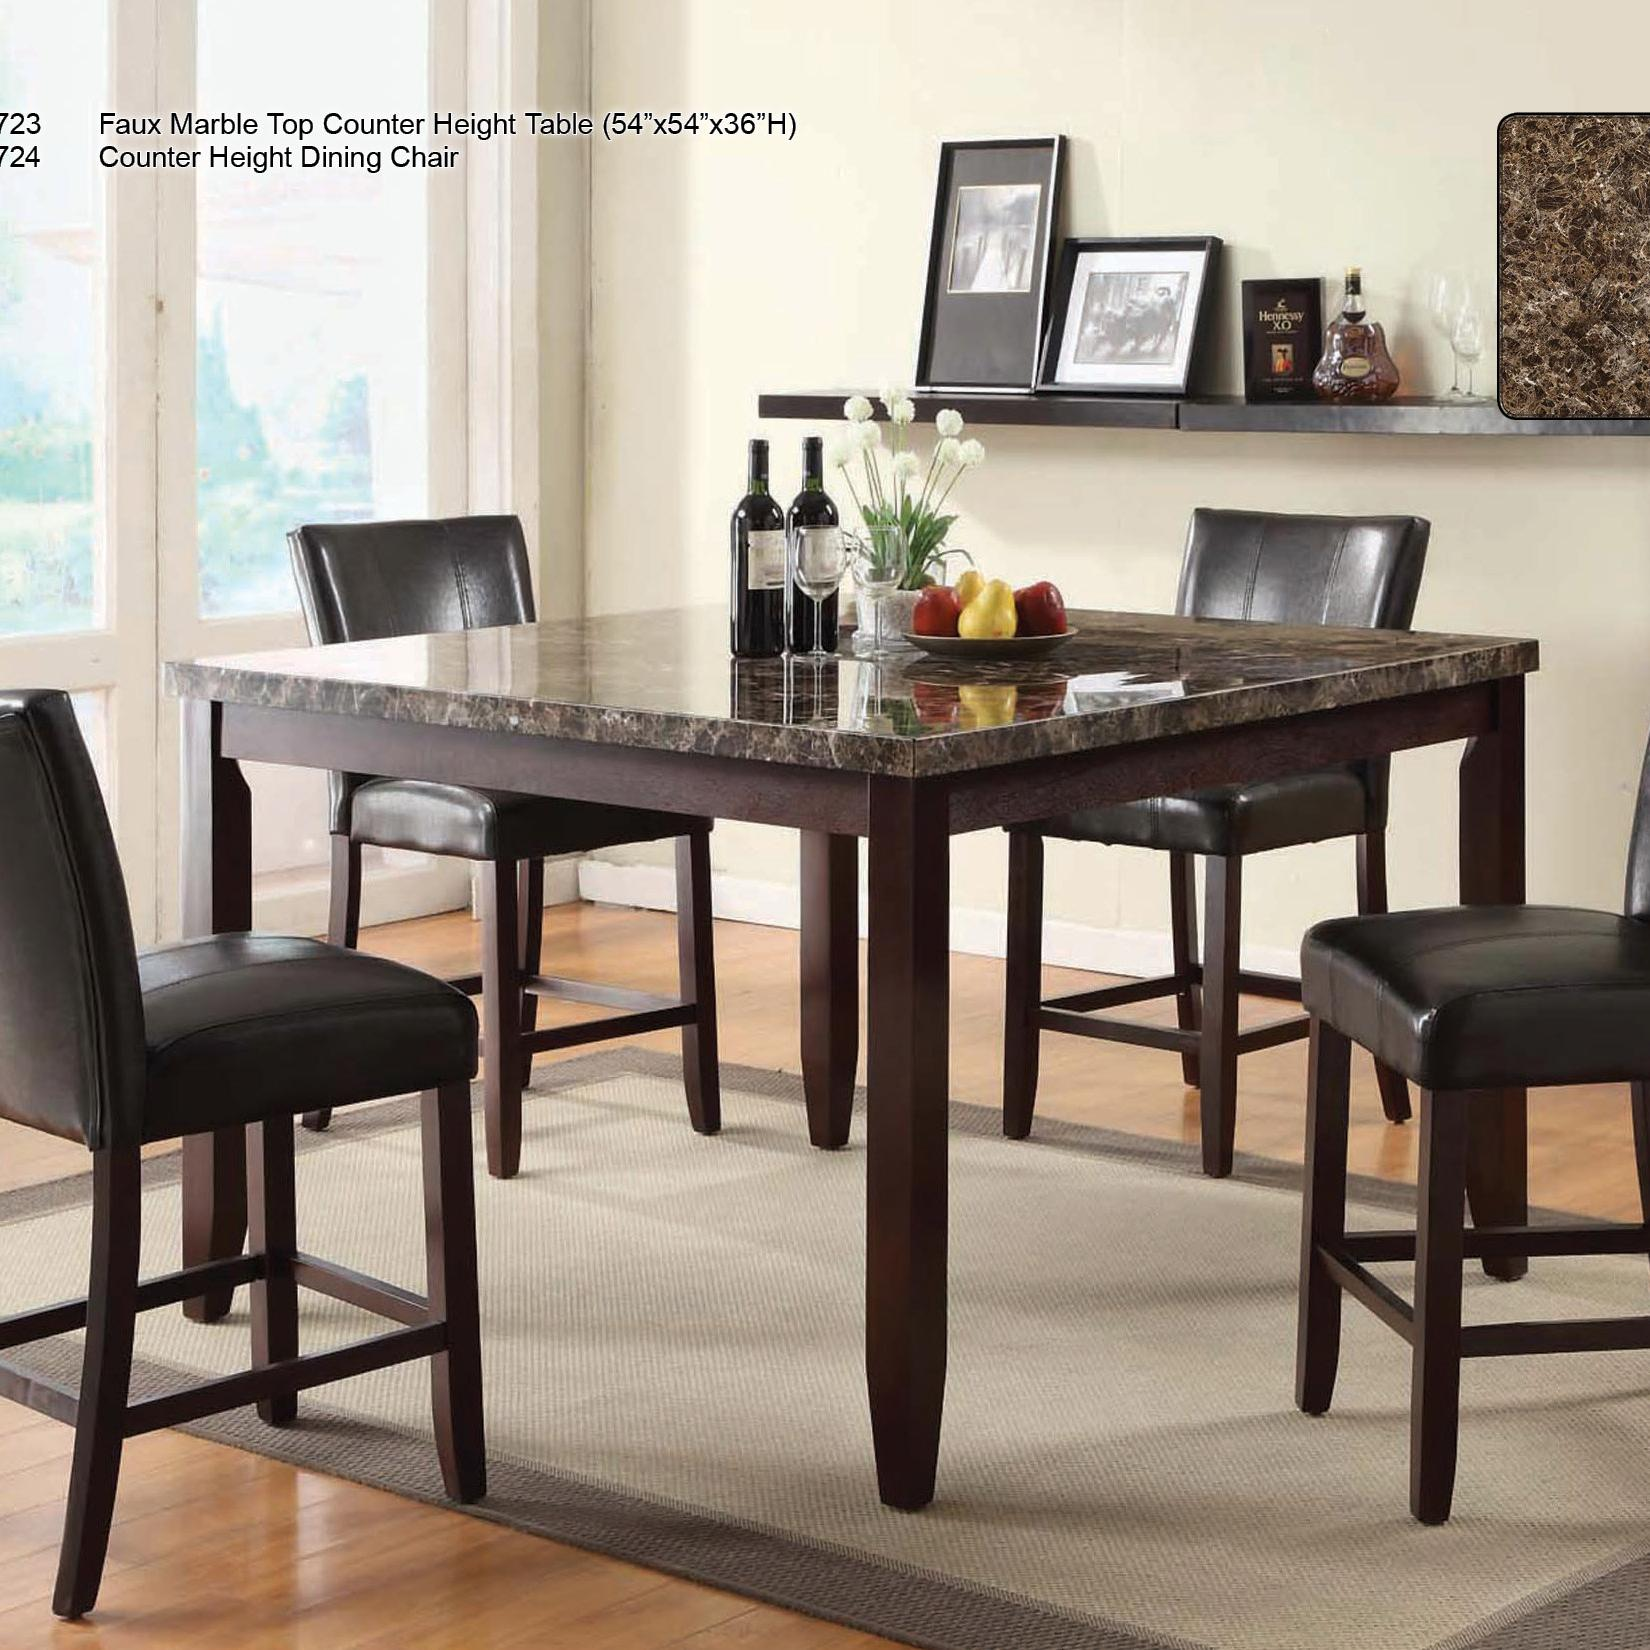 U.S. Furniture Inc 2720 Dinette Transitional Five Piece Faux Marble ...